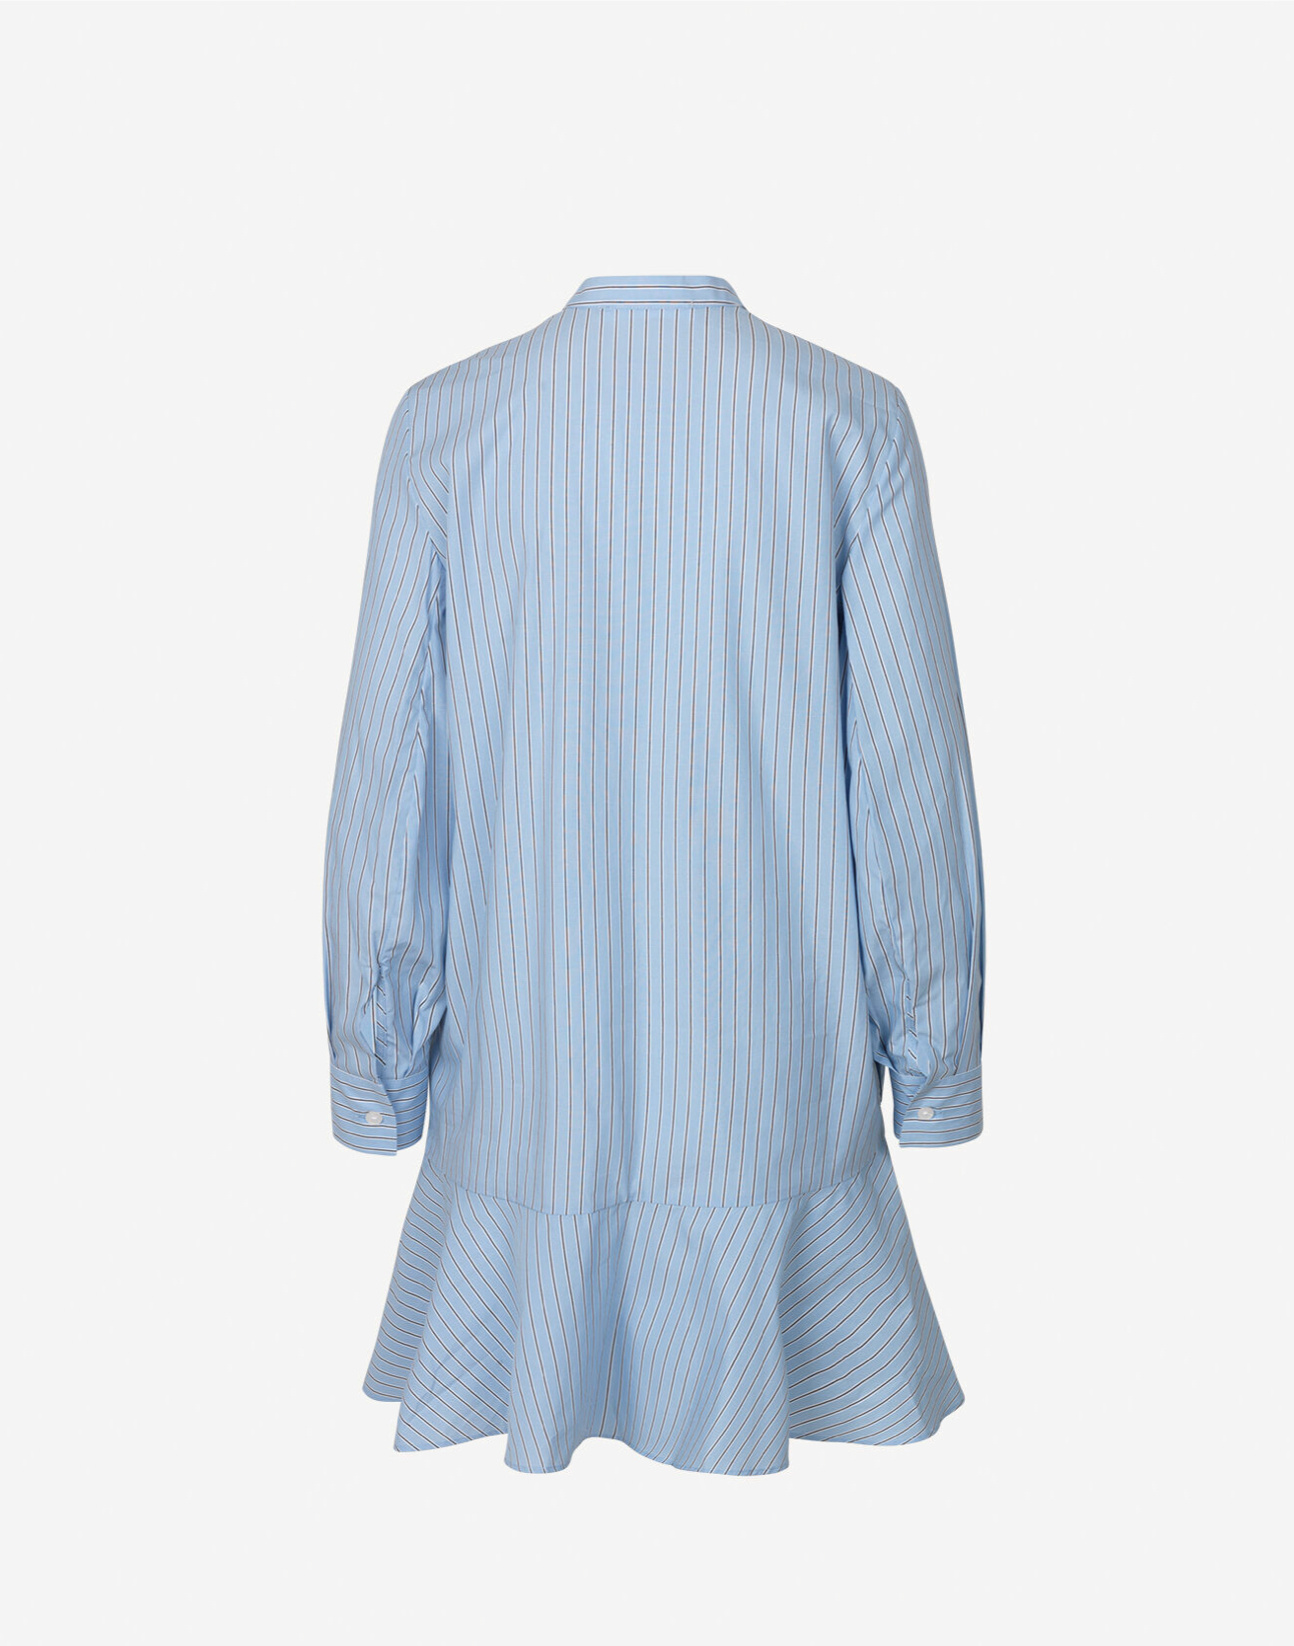 laury shirt dress Samsoe-2